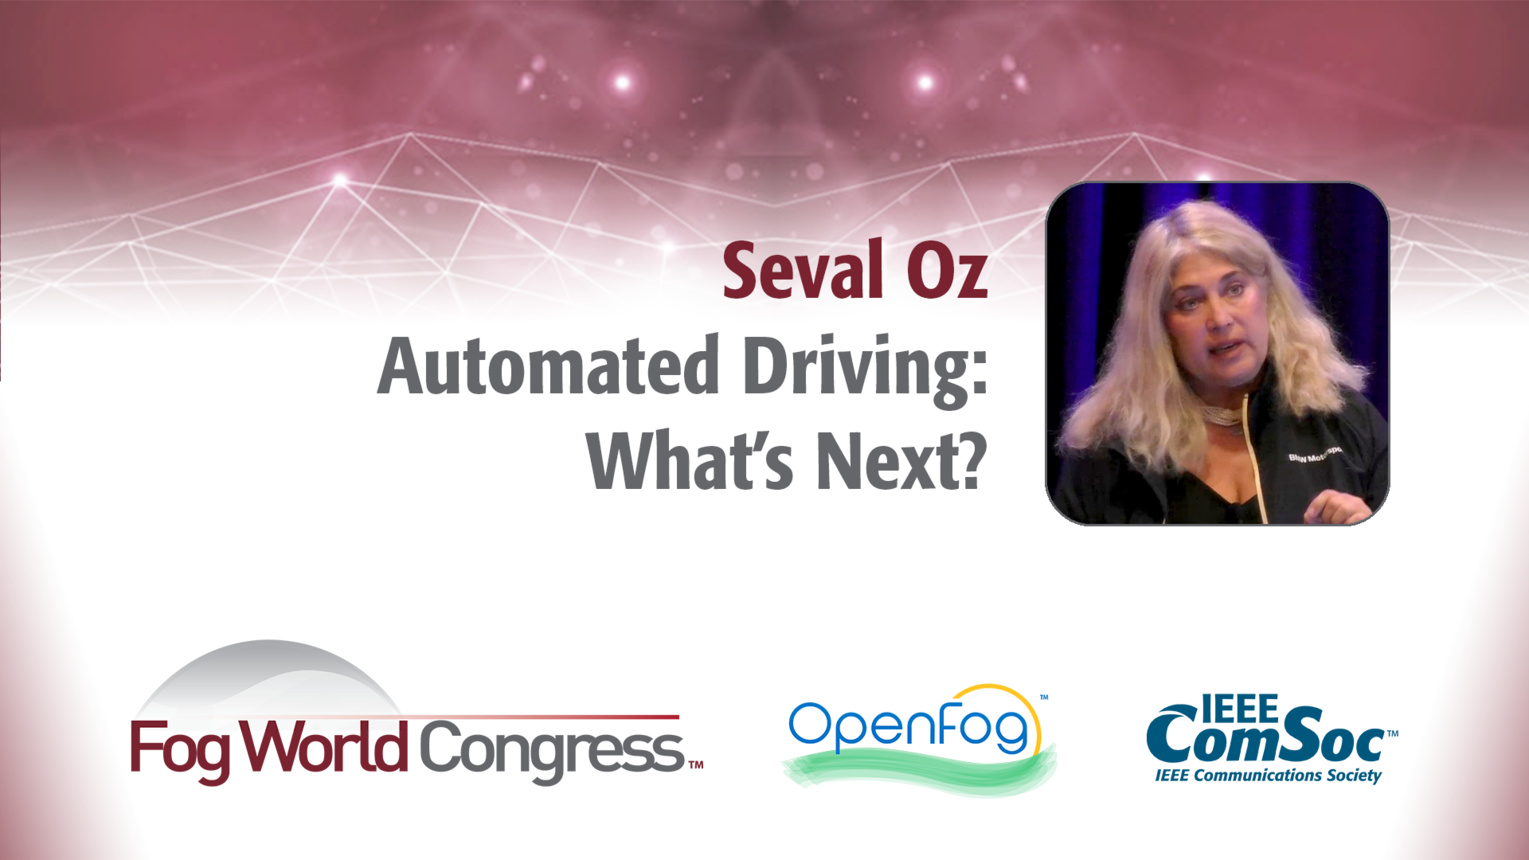 Automated Driving: What's Next? - Seval Oz, Fog World Congress 2017